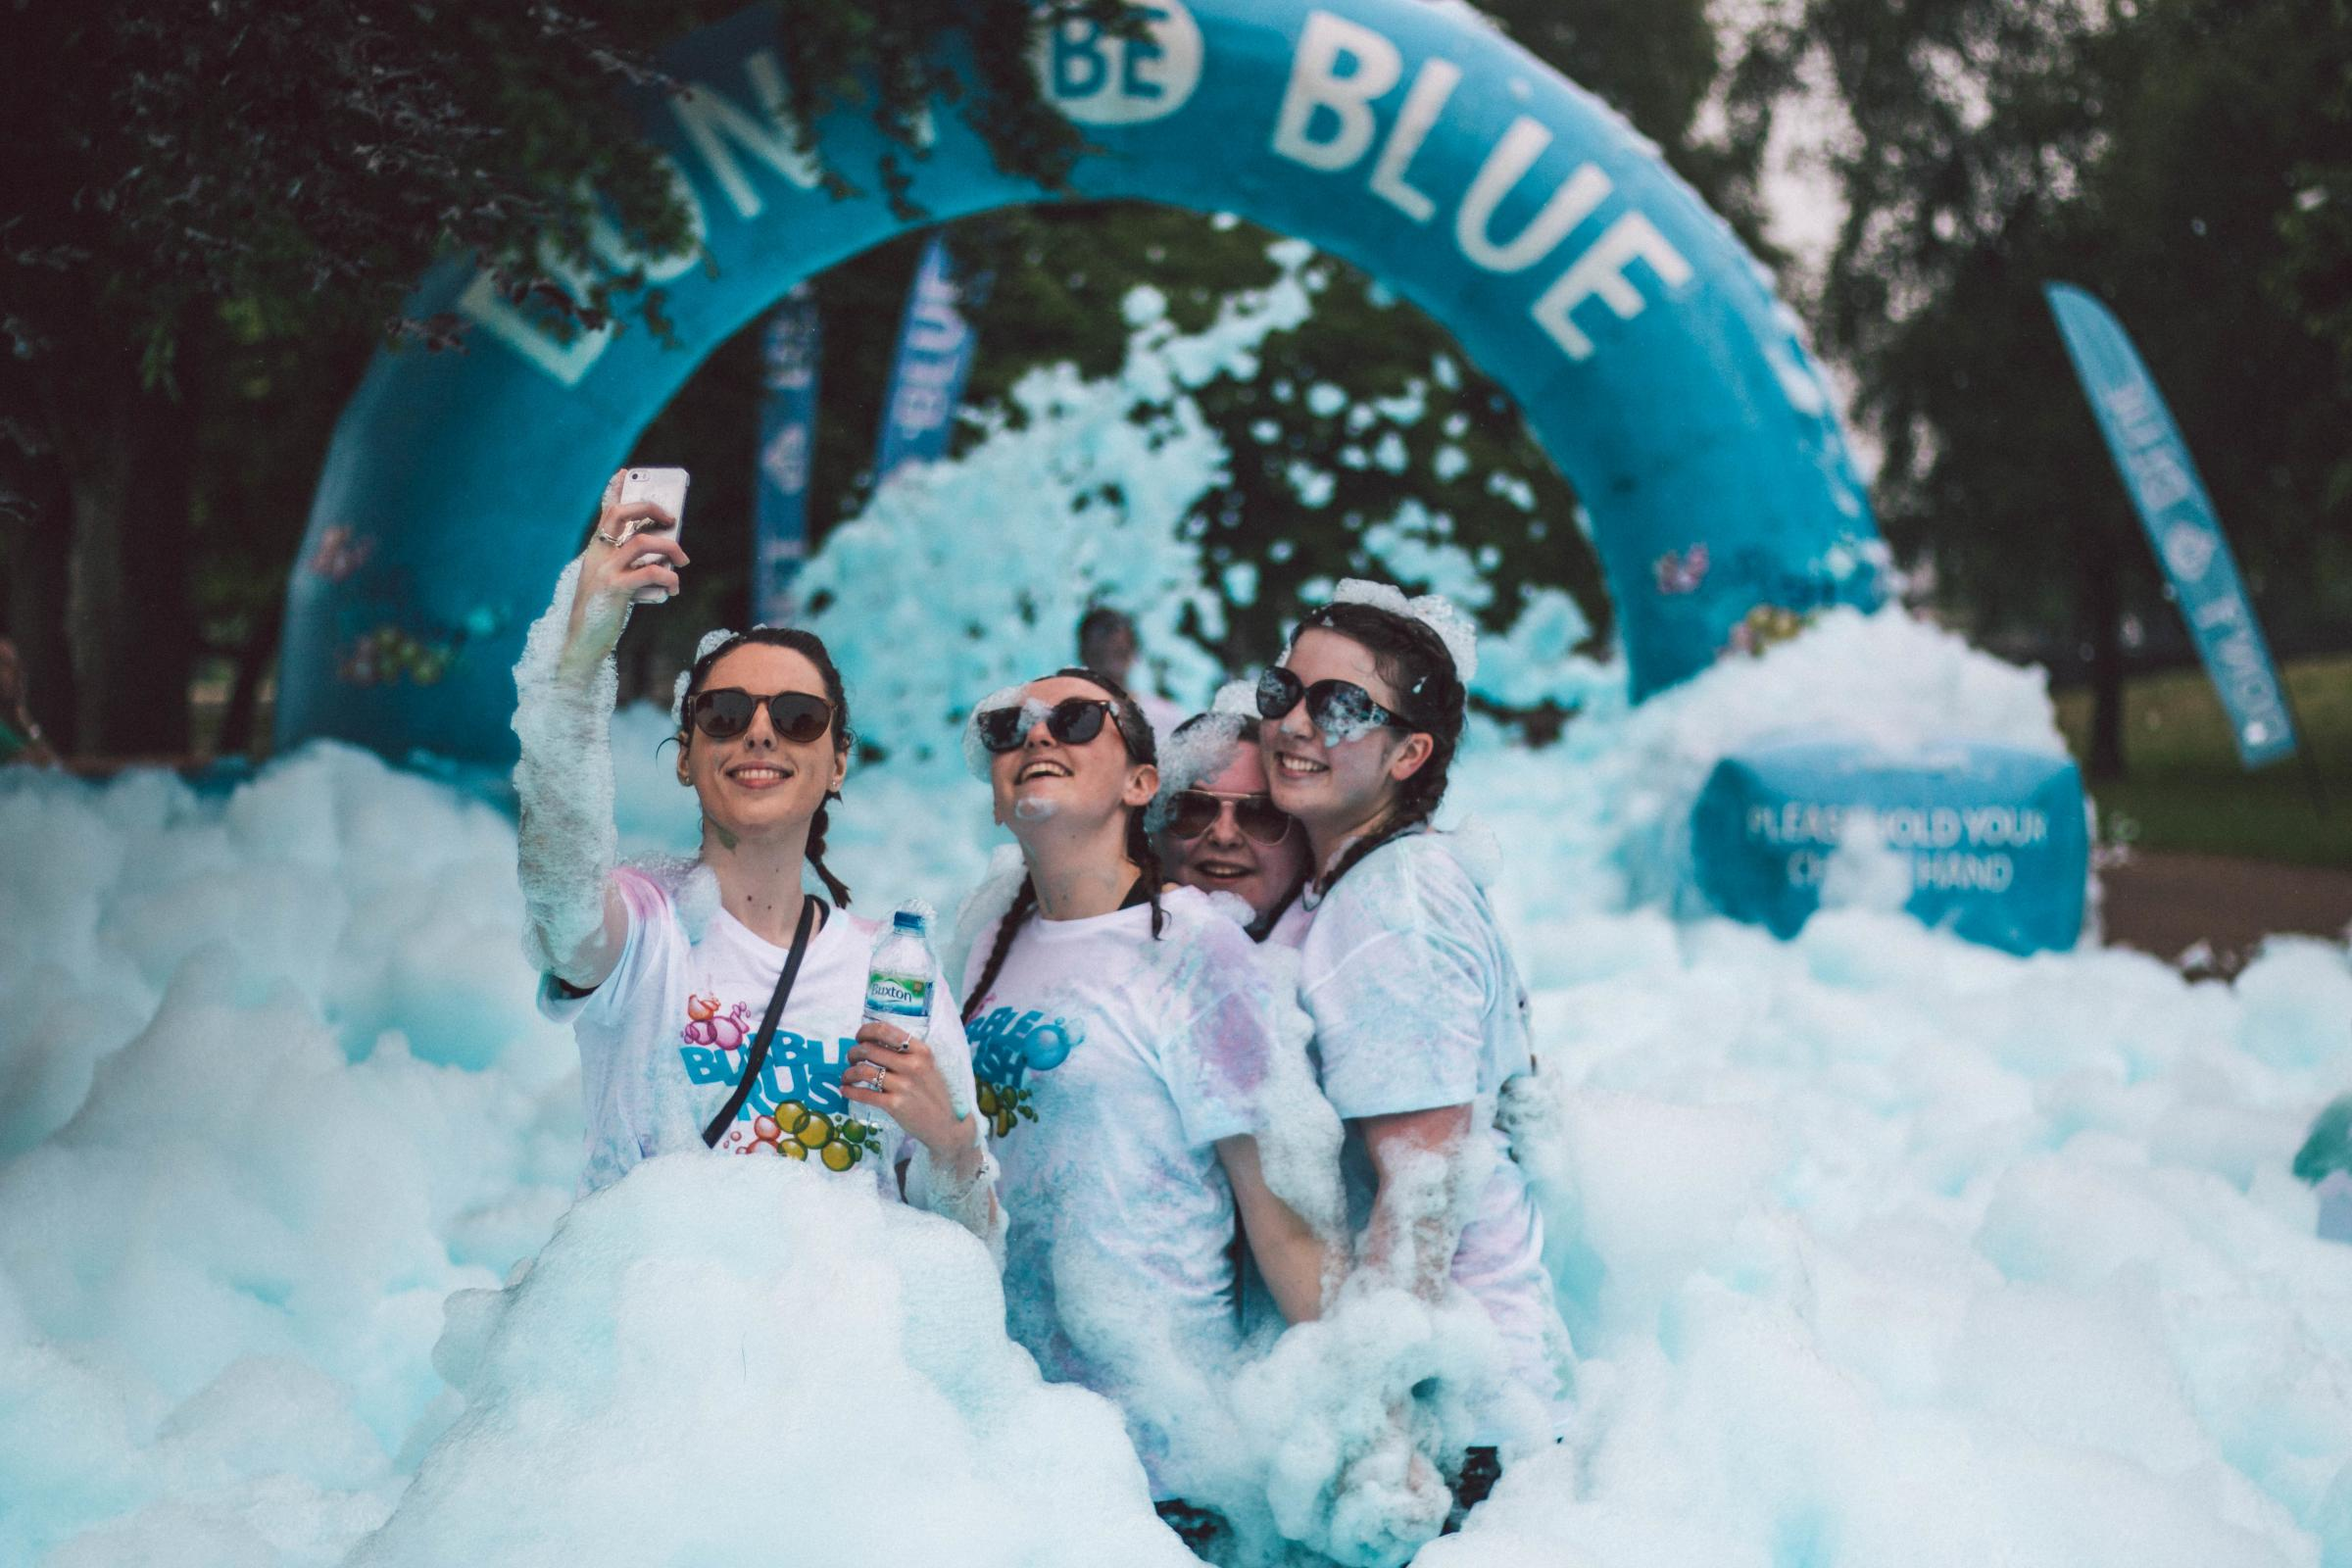 The Bubble Rush event